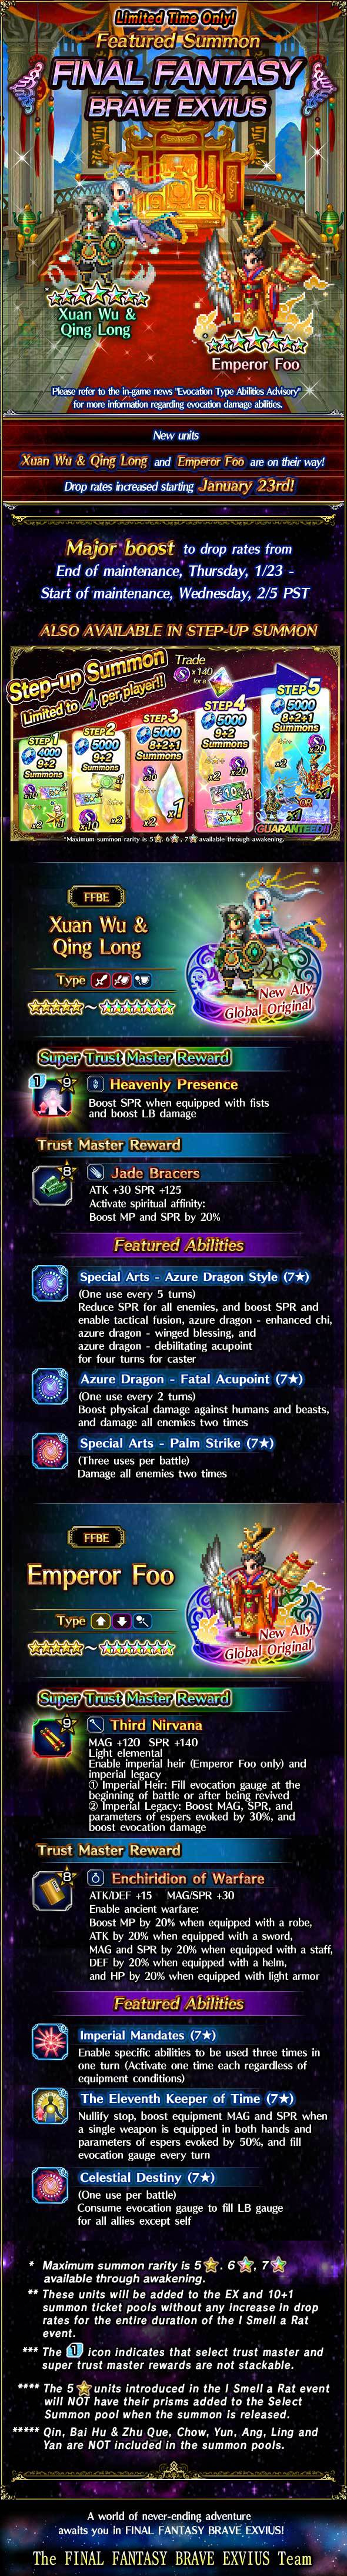 Invocations du moment, boutique d'échange et tickets 5★ garantie - FFBE (XWQL/E.Foo) - du 23/01 au 06/02/20 20200123FFBECNYFeaturedSummon